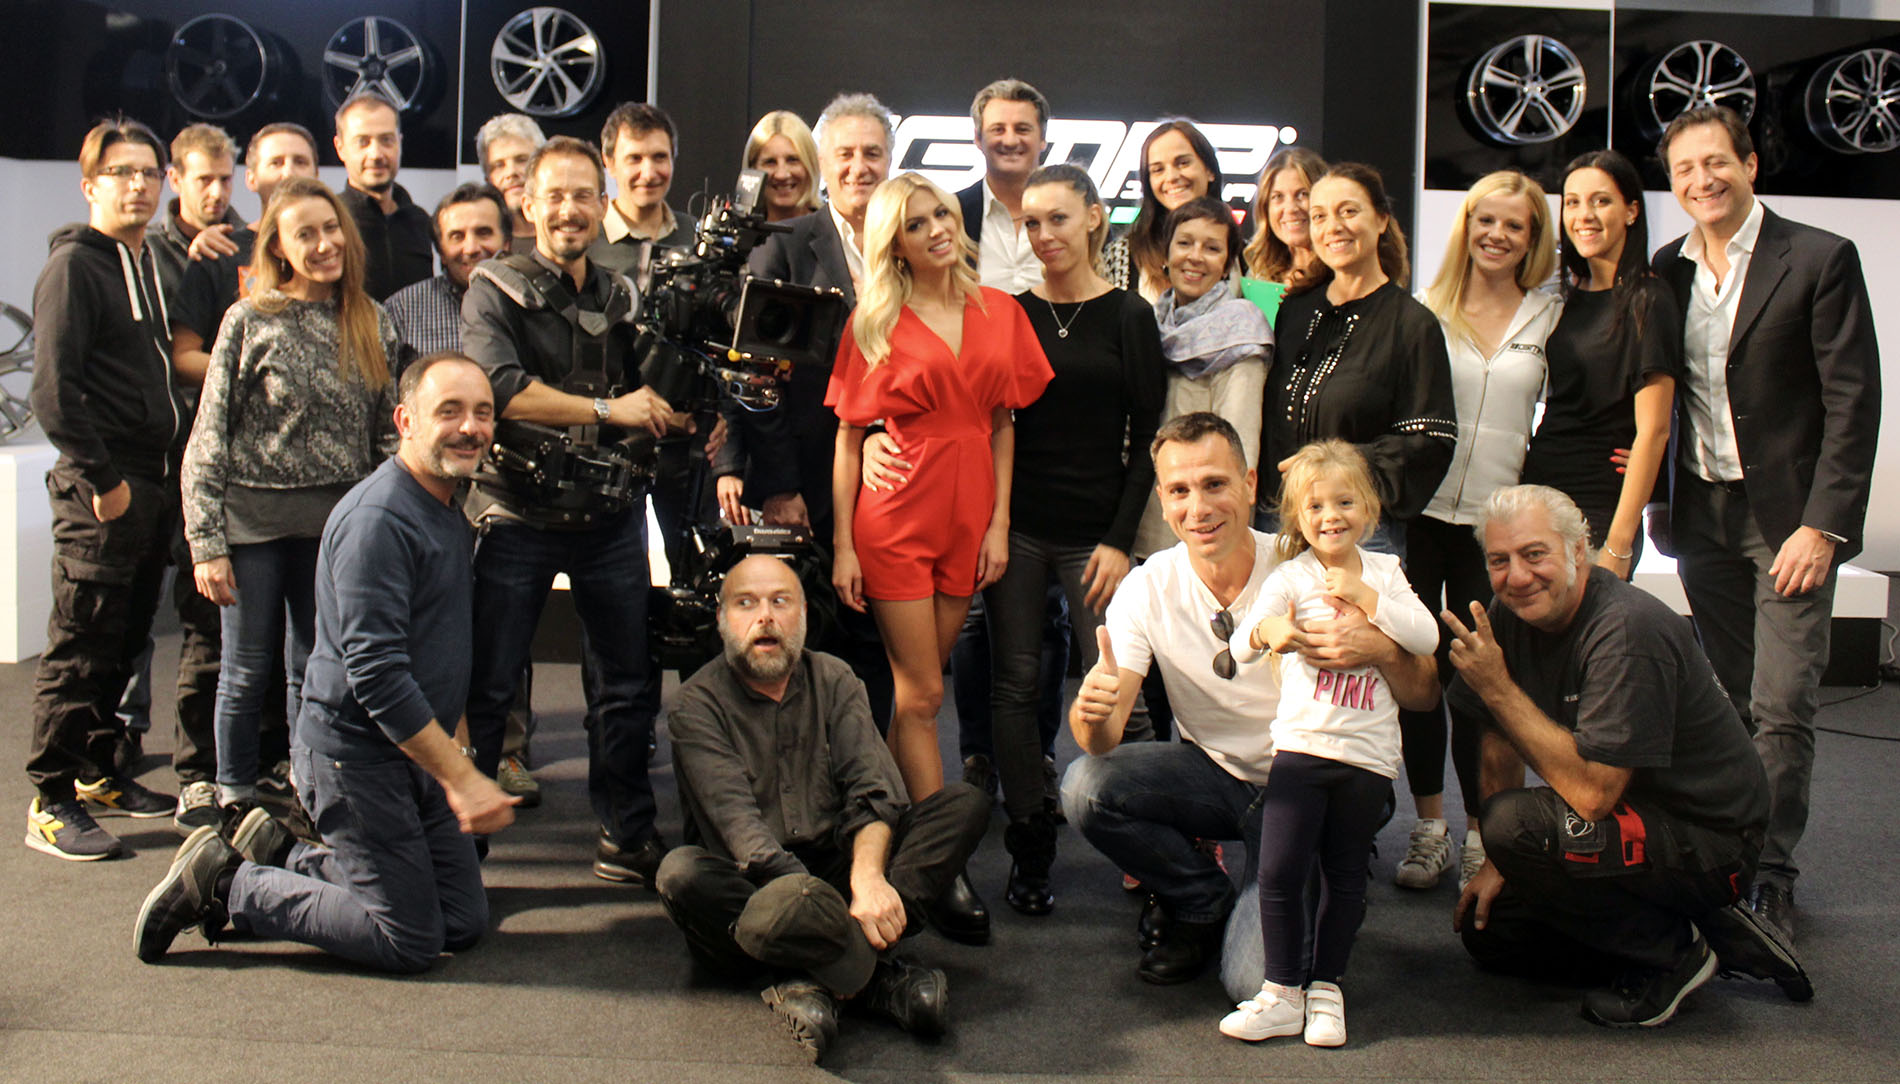 A special thanks to Ludovica Pagani, Max Temporali and Mediaset!